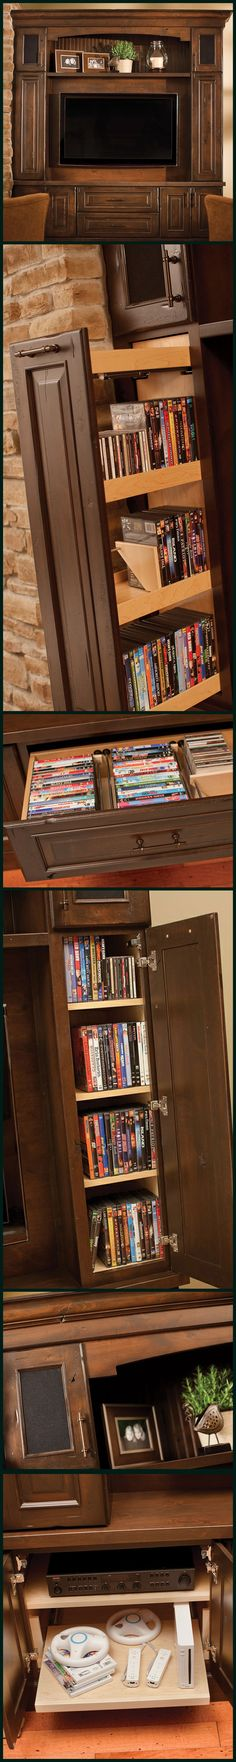 Think out of the box and design an Entertainment Center with storage for your whole family! Surround system & Speaker storage, game system roll-out shelves, pull-out media organizers, DVD & CD drawers, decorative storage, and so much more! - Dura Supreme Cabinetry